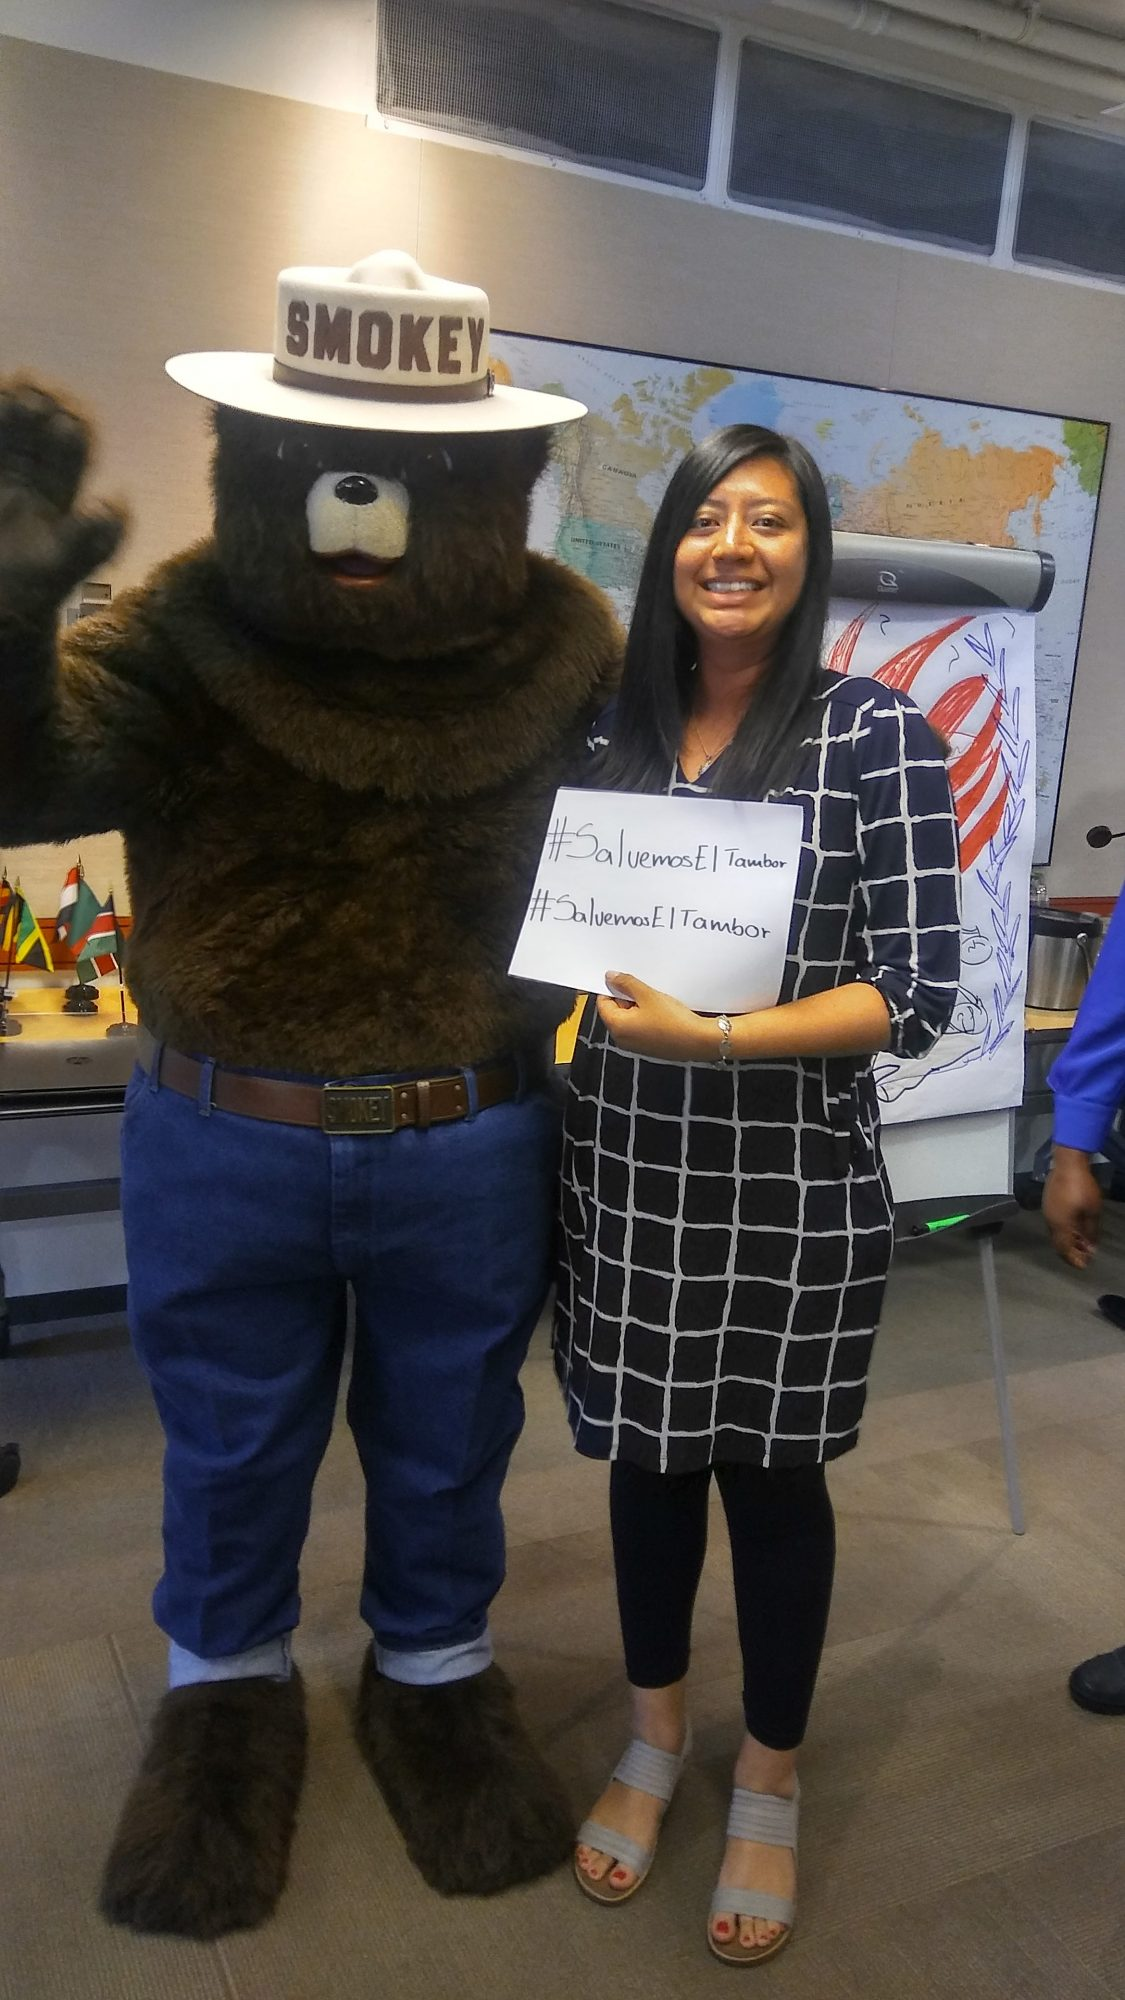 Smokey-Bear-supporting-a-campaign-from-Colectivo-Isla-Verde-e1503612191170.jpg